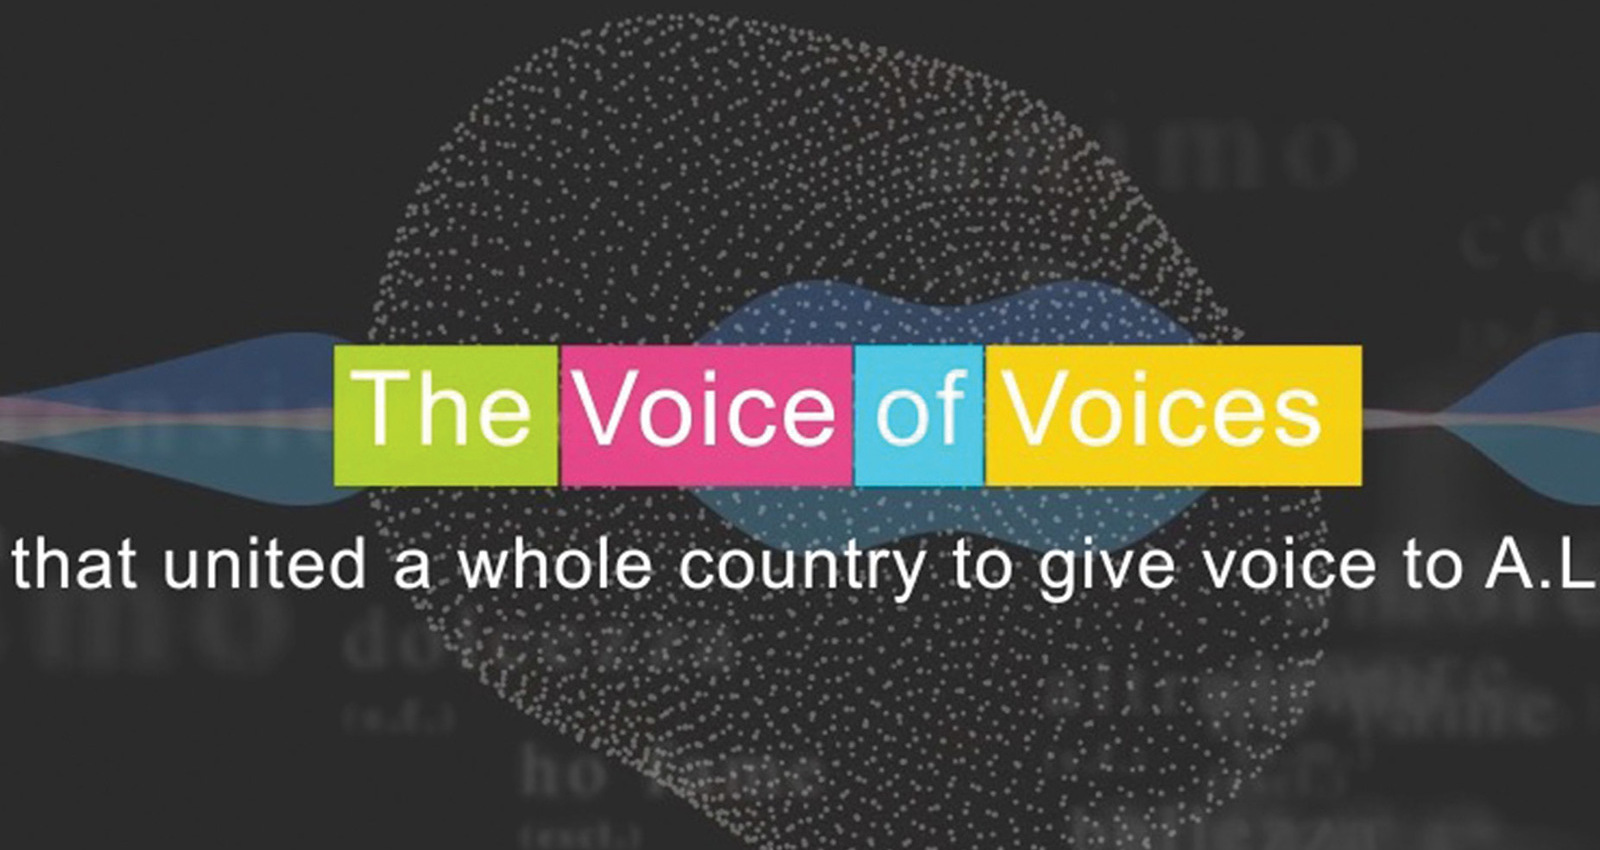 THE VOICE OF VOICES